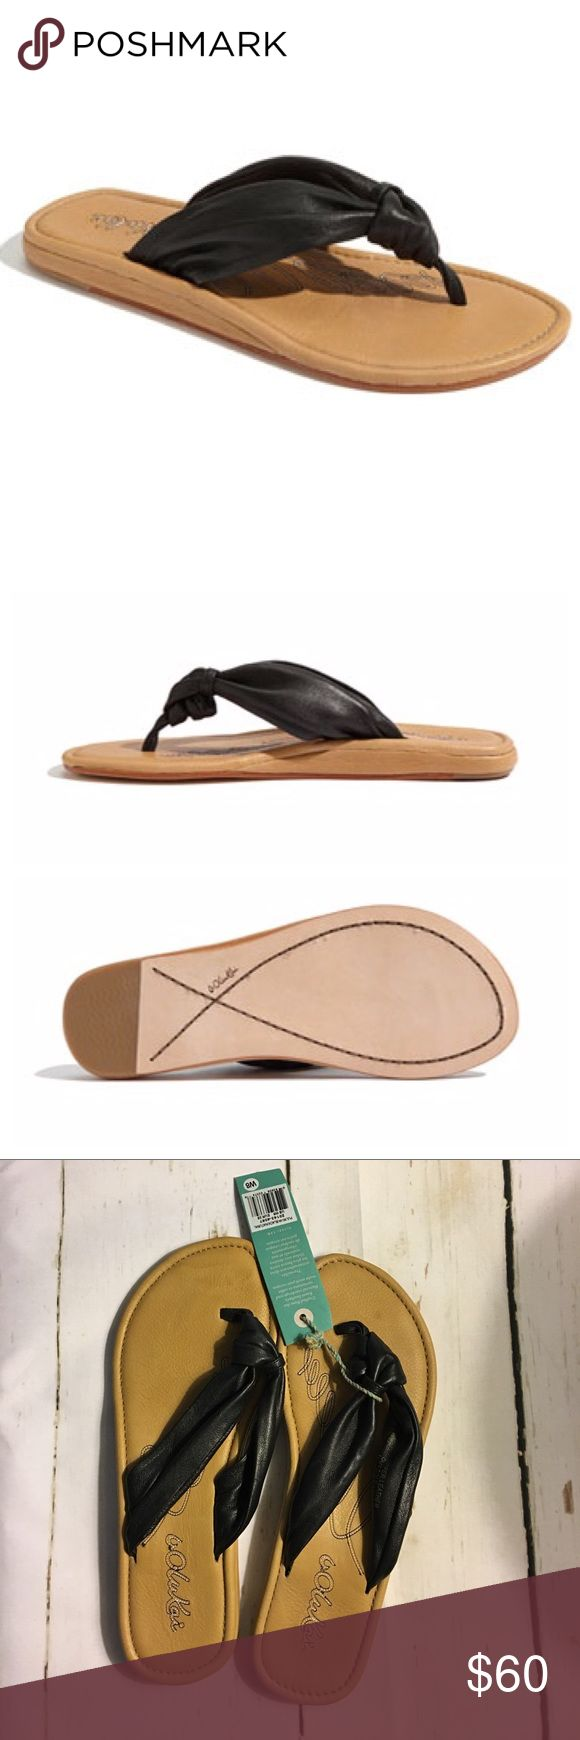 Puliki' Thong Sandal Supple leather & timeless sophistication meld to create this classic Puliki from OluKai.(poo-lee-kee) Translation: Hug. Premium full grain napa leather strap for extra supple & soft feel & Natural latex comfort footbed. Decorative footbed stitching inspired by the Hawaiian island chain. Hand-tied knotted toe post for a unique look. . Anatomical compression-molded EVA heel wedge. High quality leather dress outsole with natural rubber heel tap. Cable stitch detail & laser…